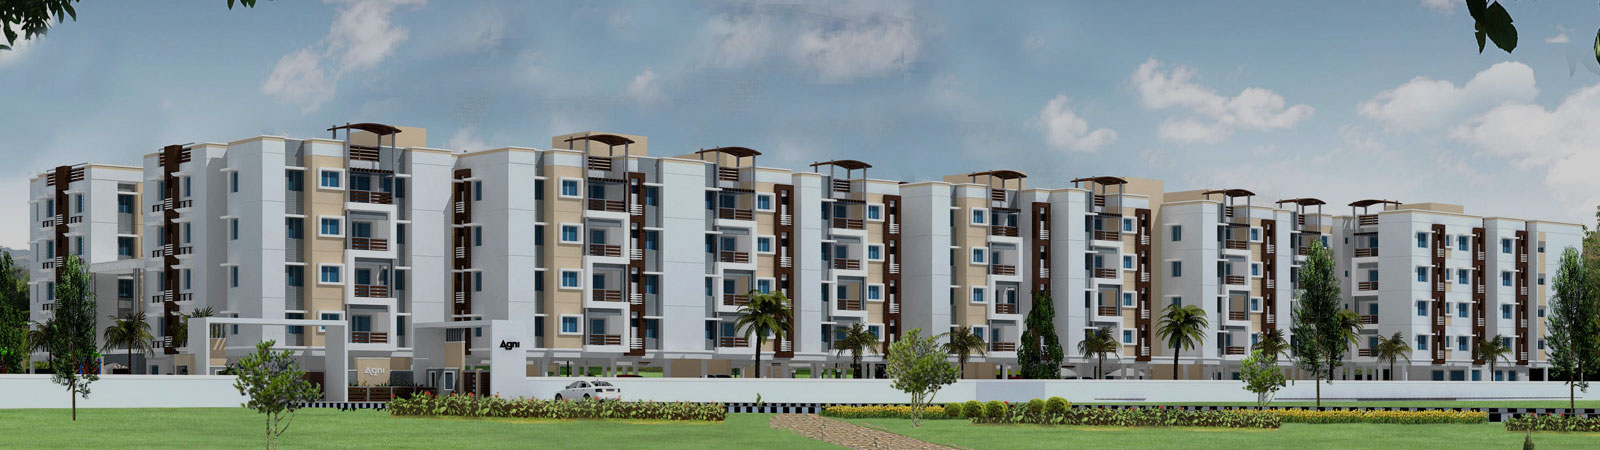 Purchase 2 BHK Flats near Ambattur at a Reasonable Price